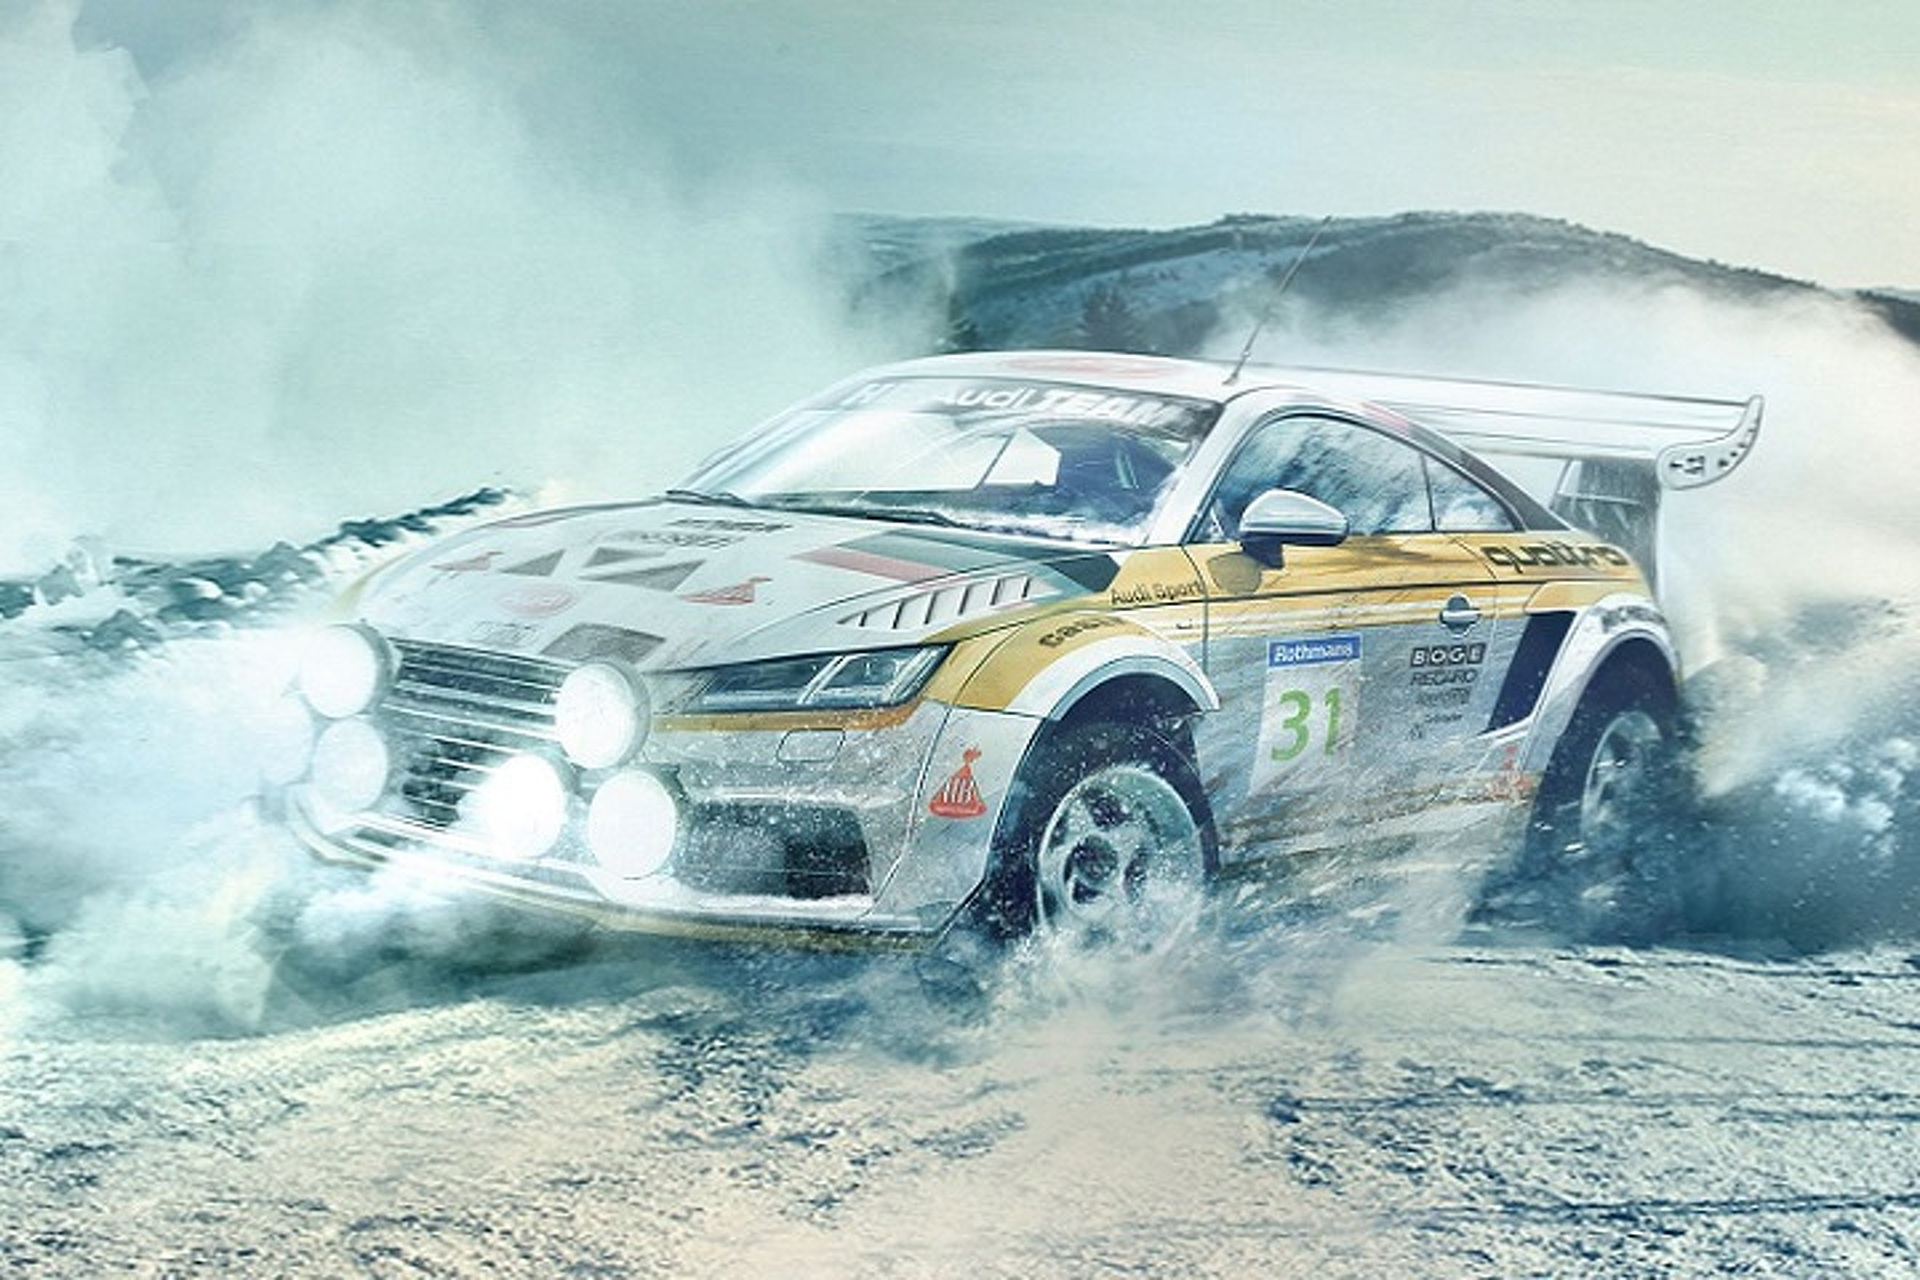 Modern Cars Re-imagined as Group B Rally Cars